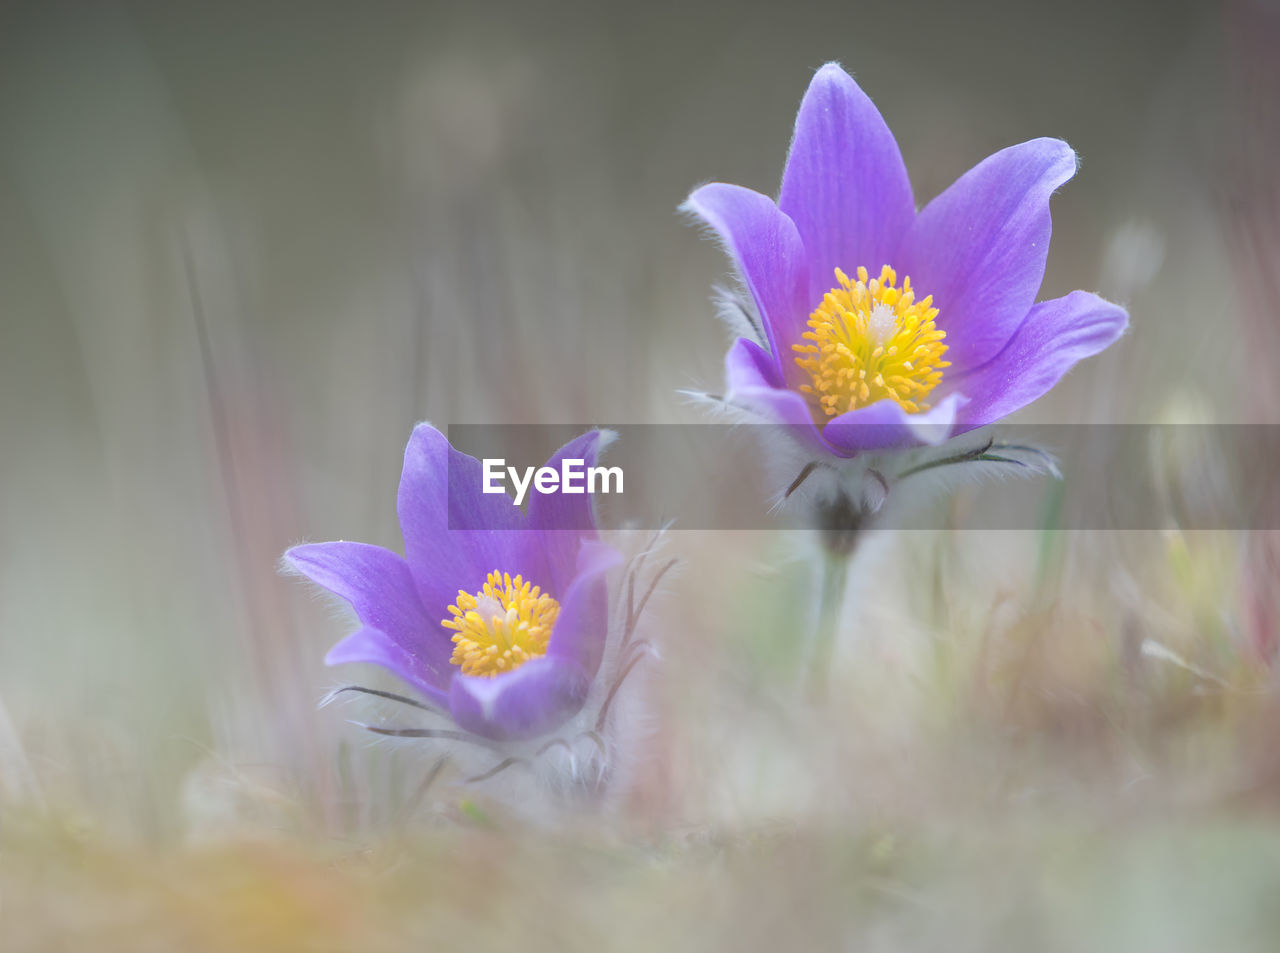 flowering plant, flower, vulnerability, fragility, plant, freshness, beauty in nature, petal, selective focus, growth, close-up, inflorescence, flower head, nature, no people, pollen, day, pink color, iris, land, crocus, purple